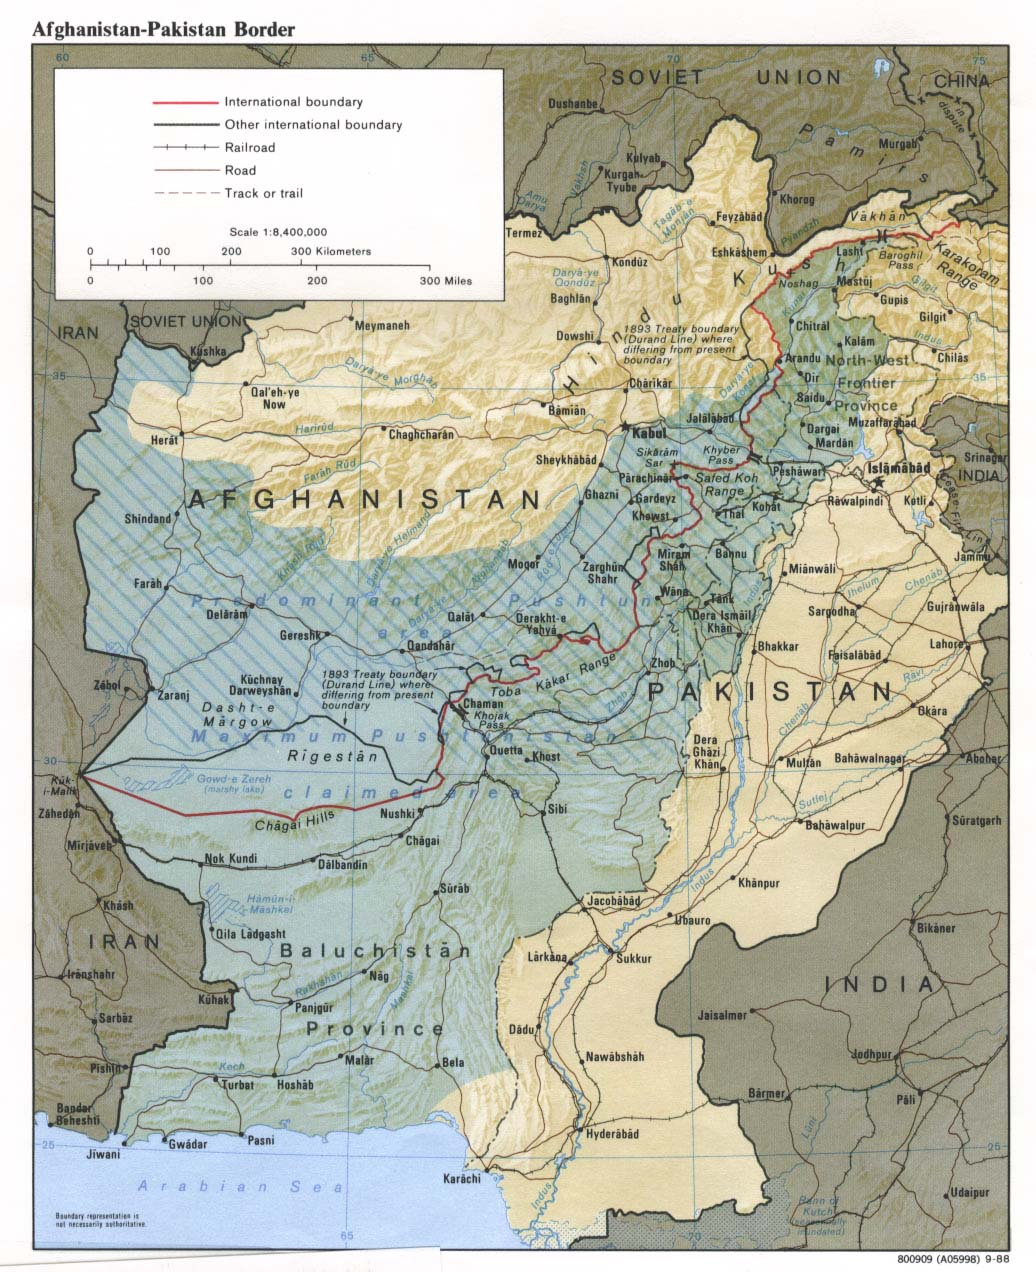 a history of the taliban in the middle east Bbc news looks at the history of the taliban movement in afghanistan and  pakistan.